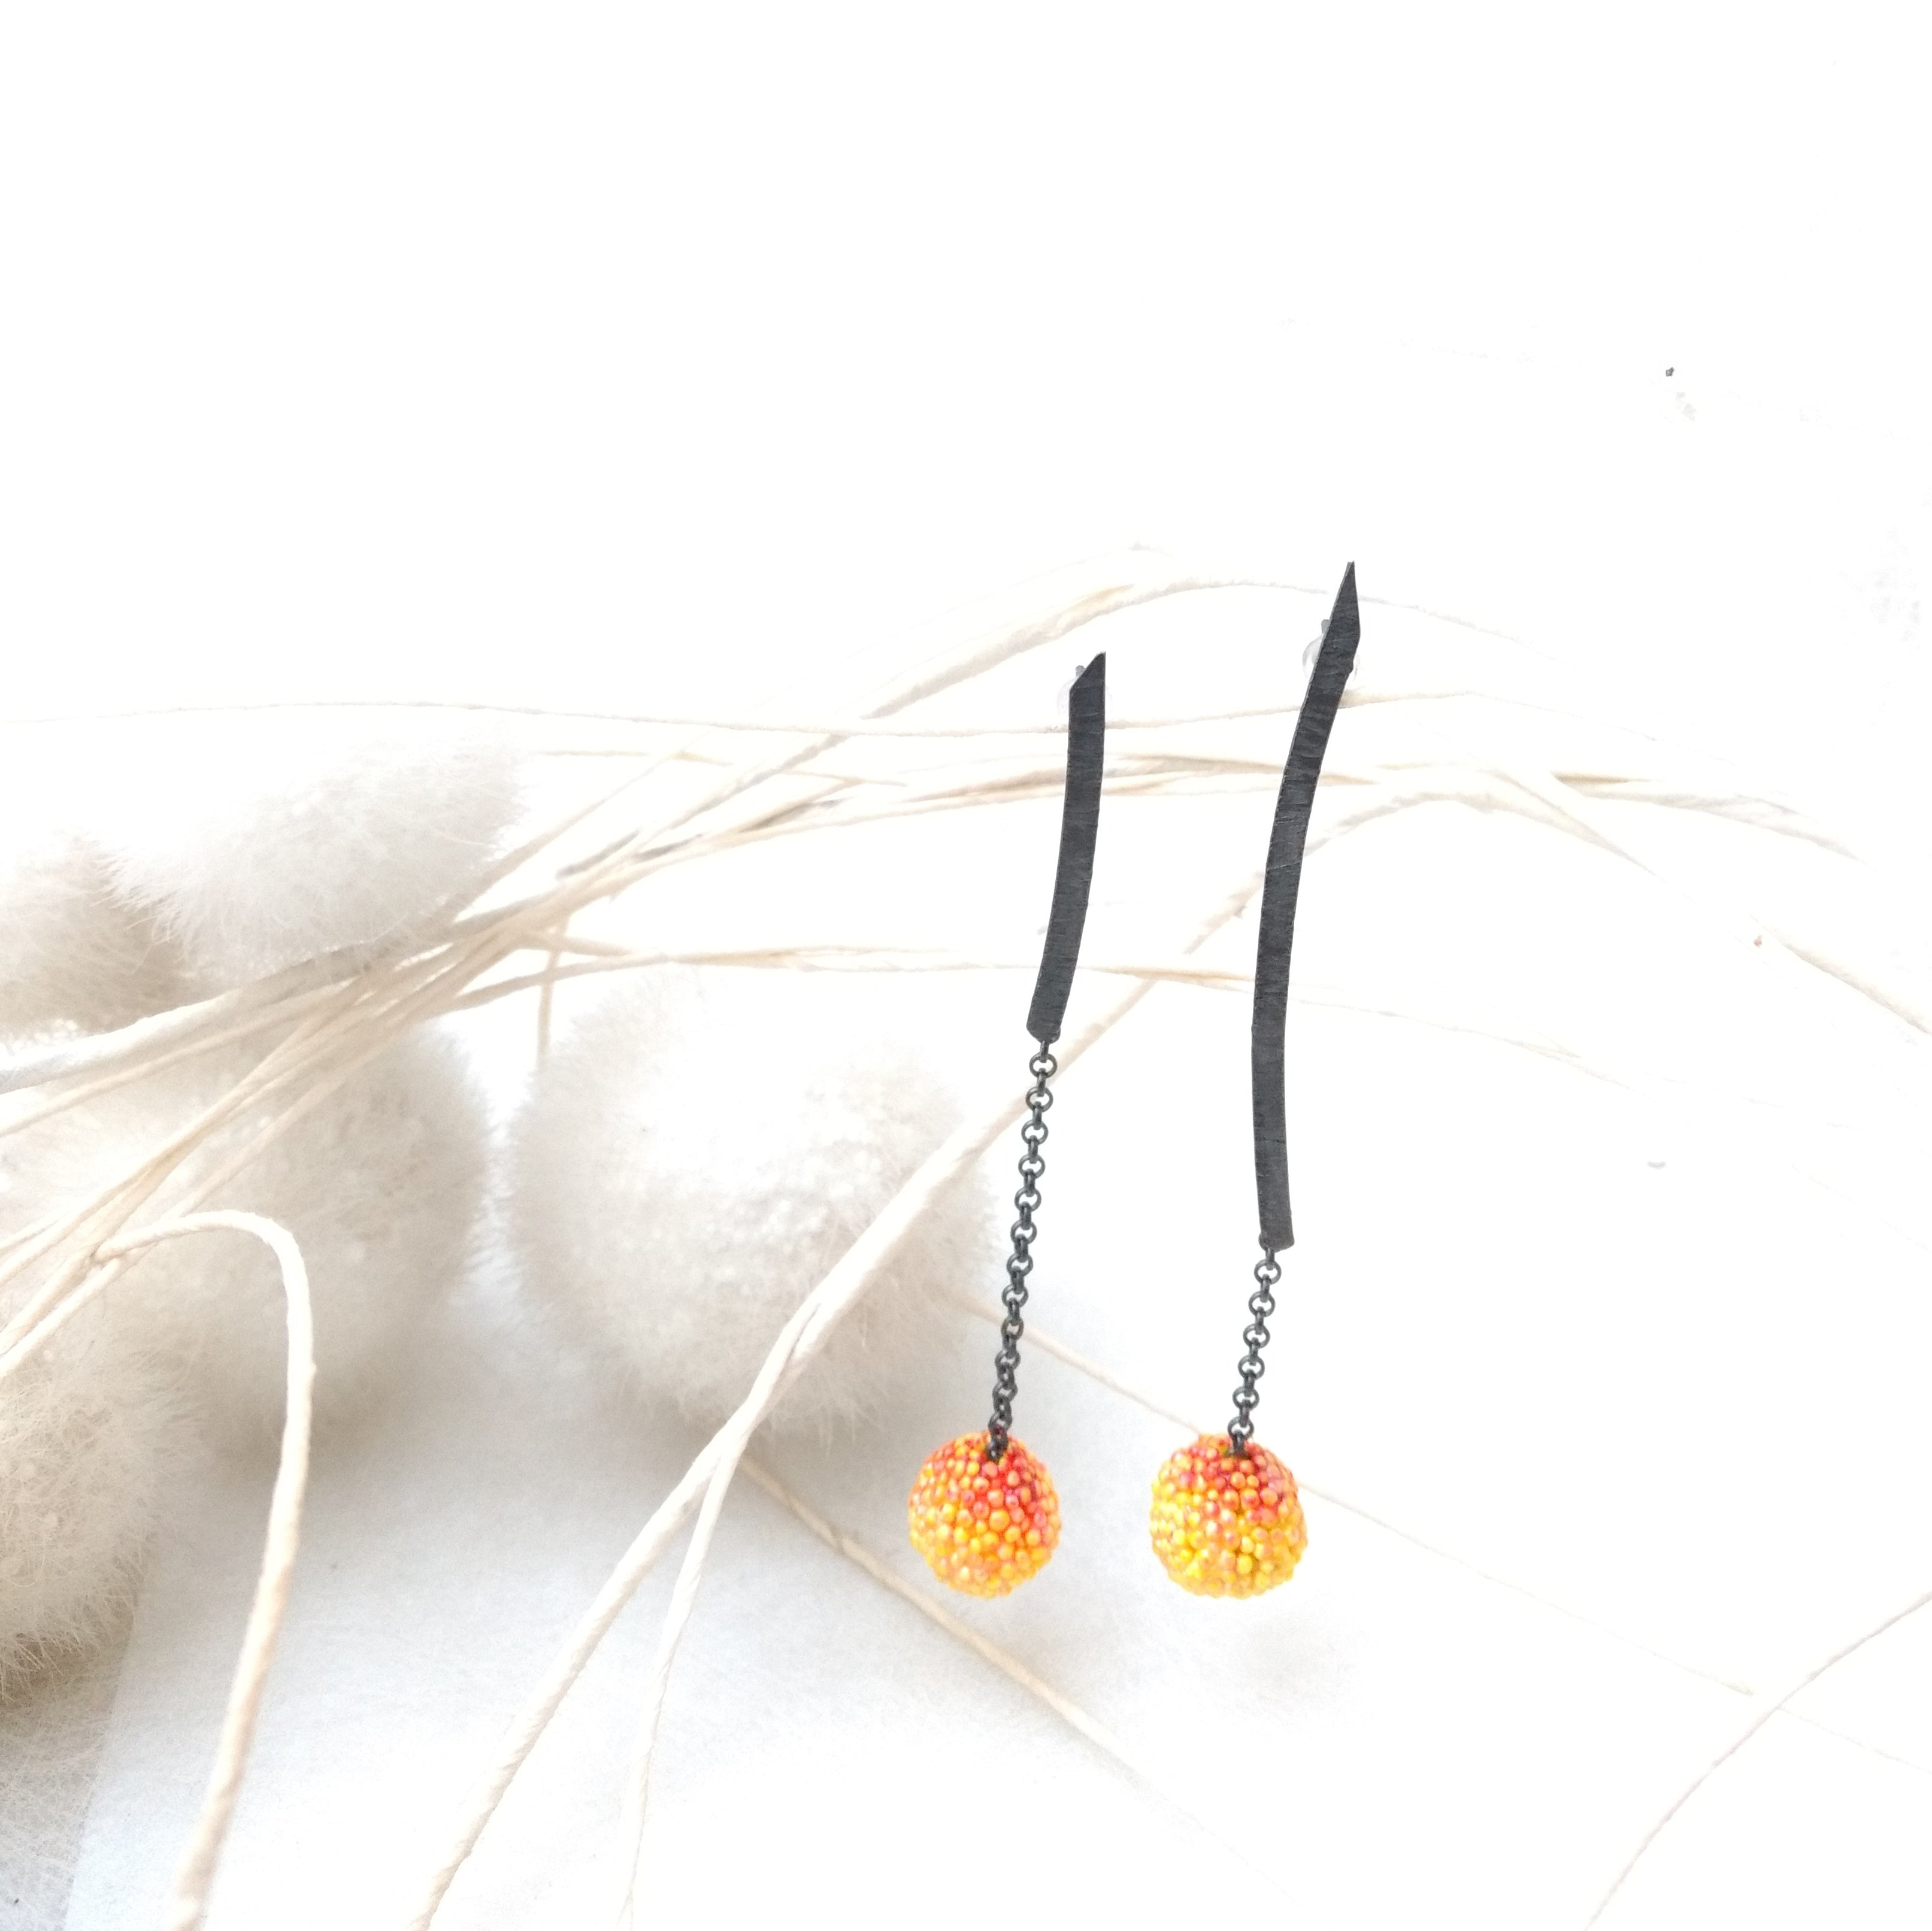 Long earrings with chain and two-tone bead - Unique pieces